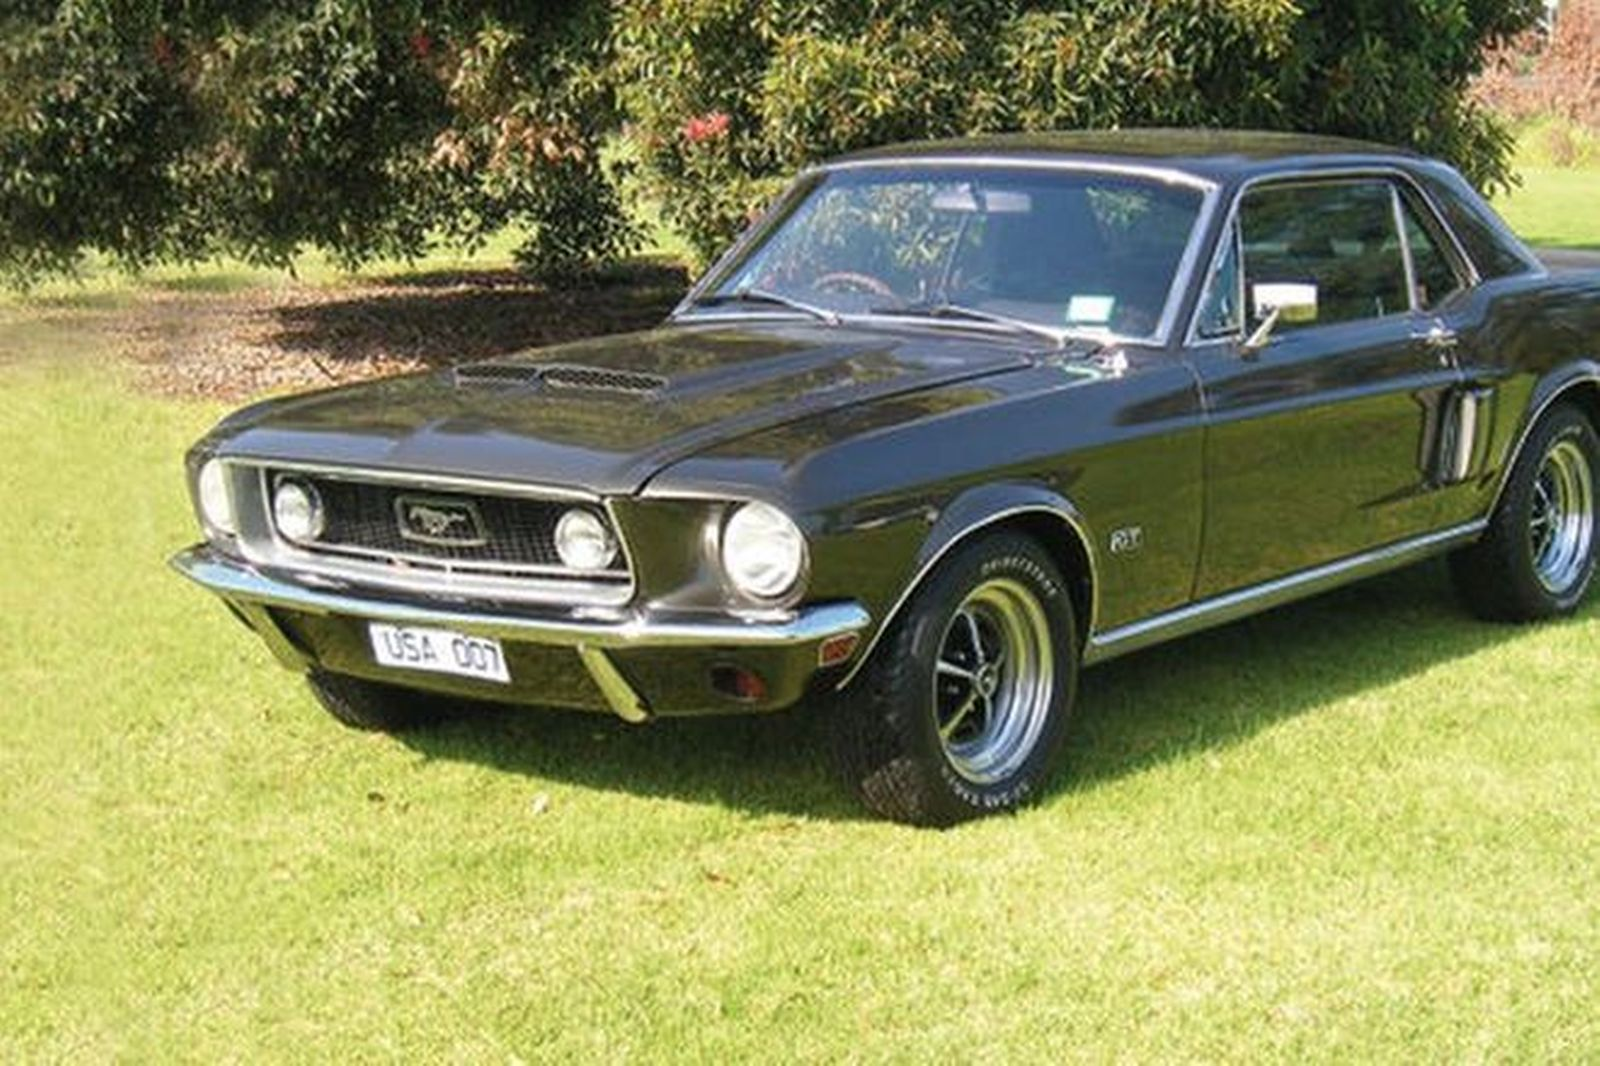 Ford Mustang Coupe (RHD)